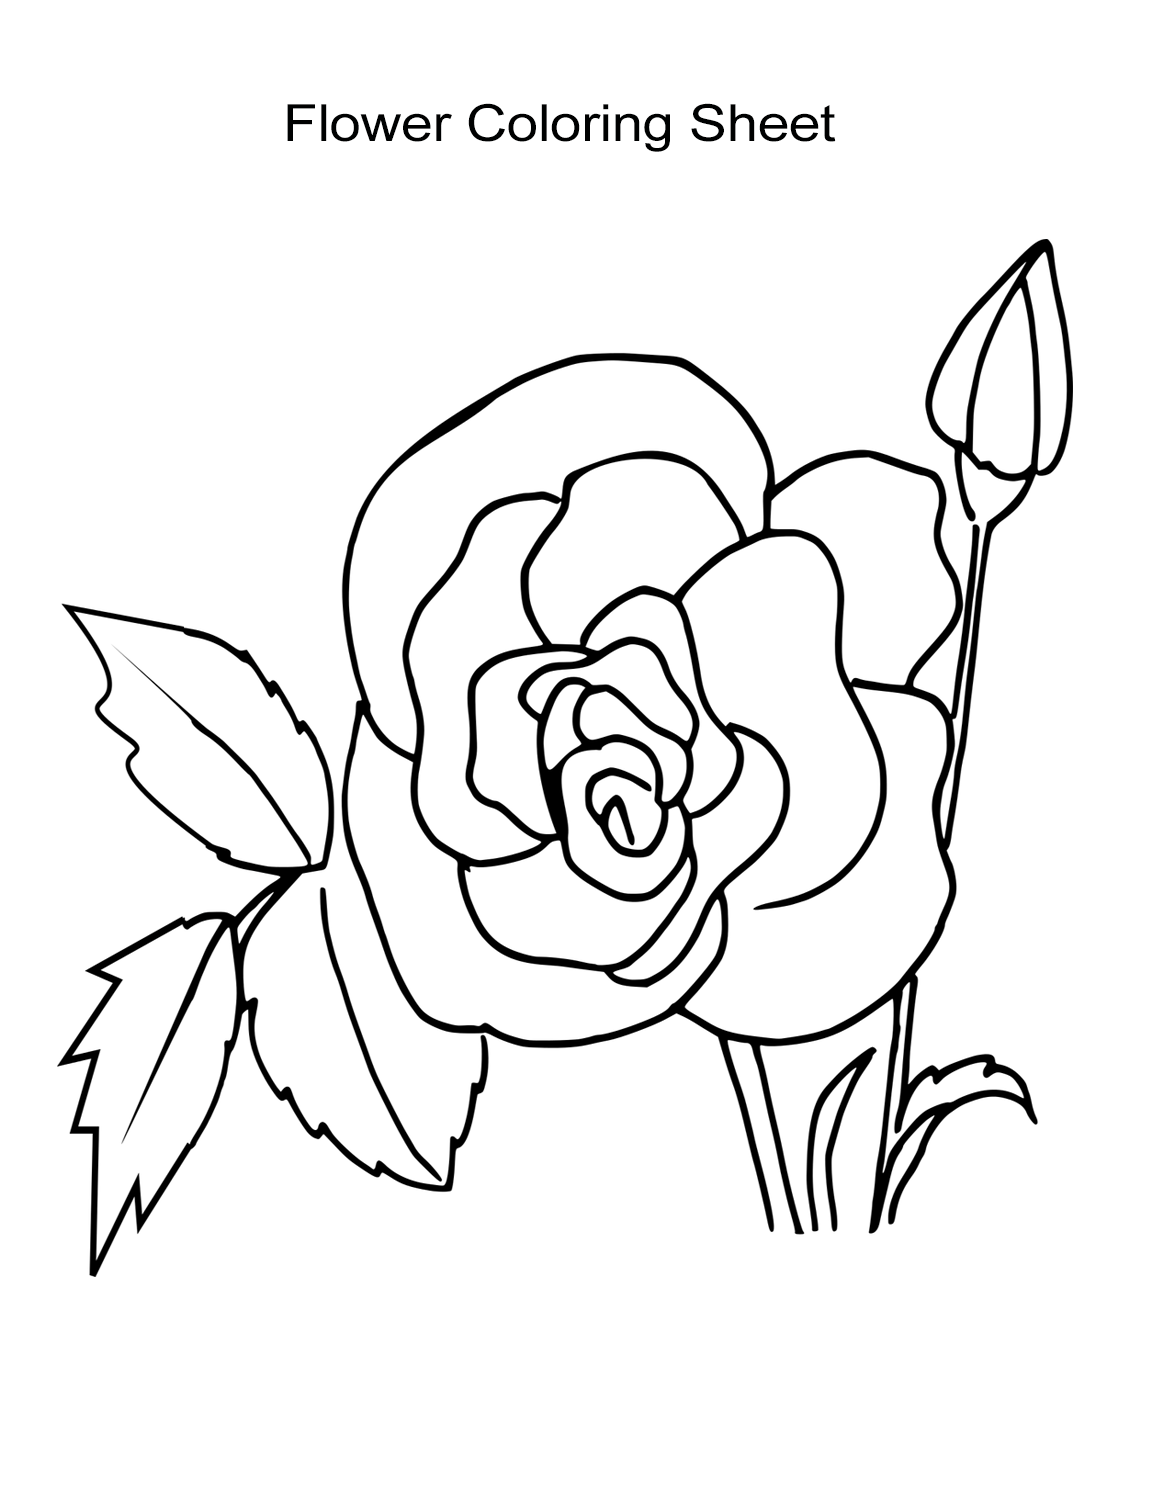 10 flower coloring sheets for girls and